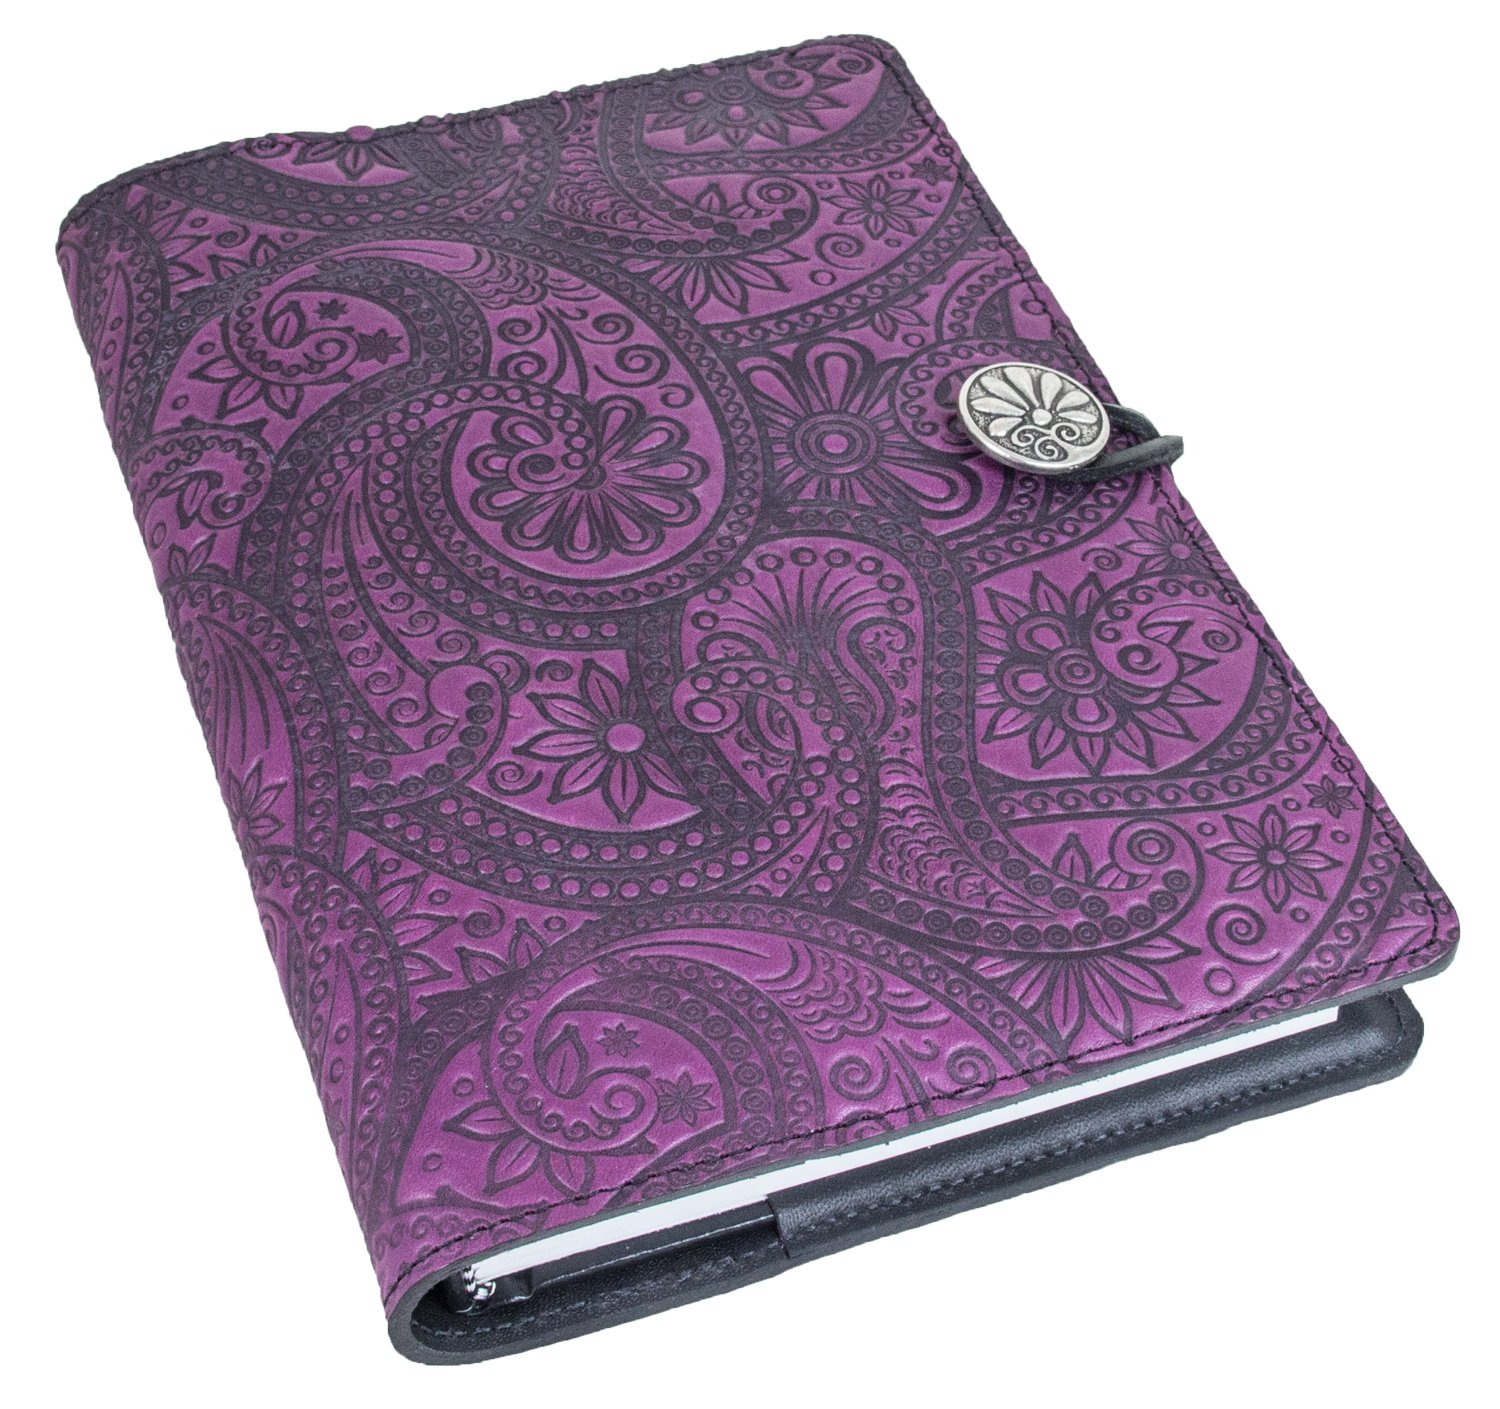 Genuine Leather Refillable Journal Cover with a Hardbound Blank Insert, 6x9 Inches, Paisley, Orchid with Pewter Button, Made in The USA by Oberon Design